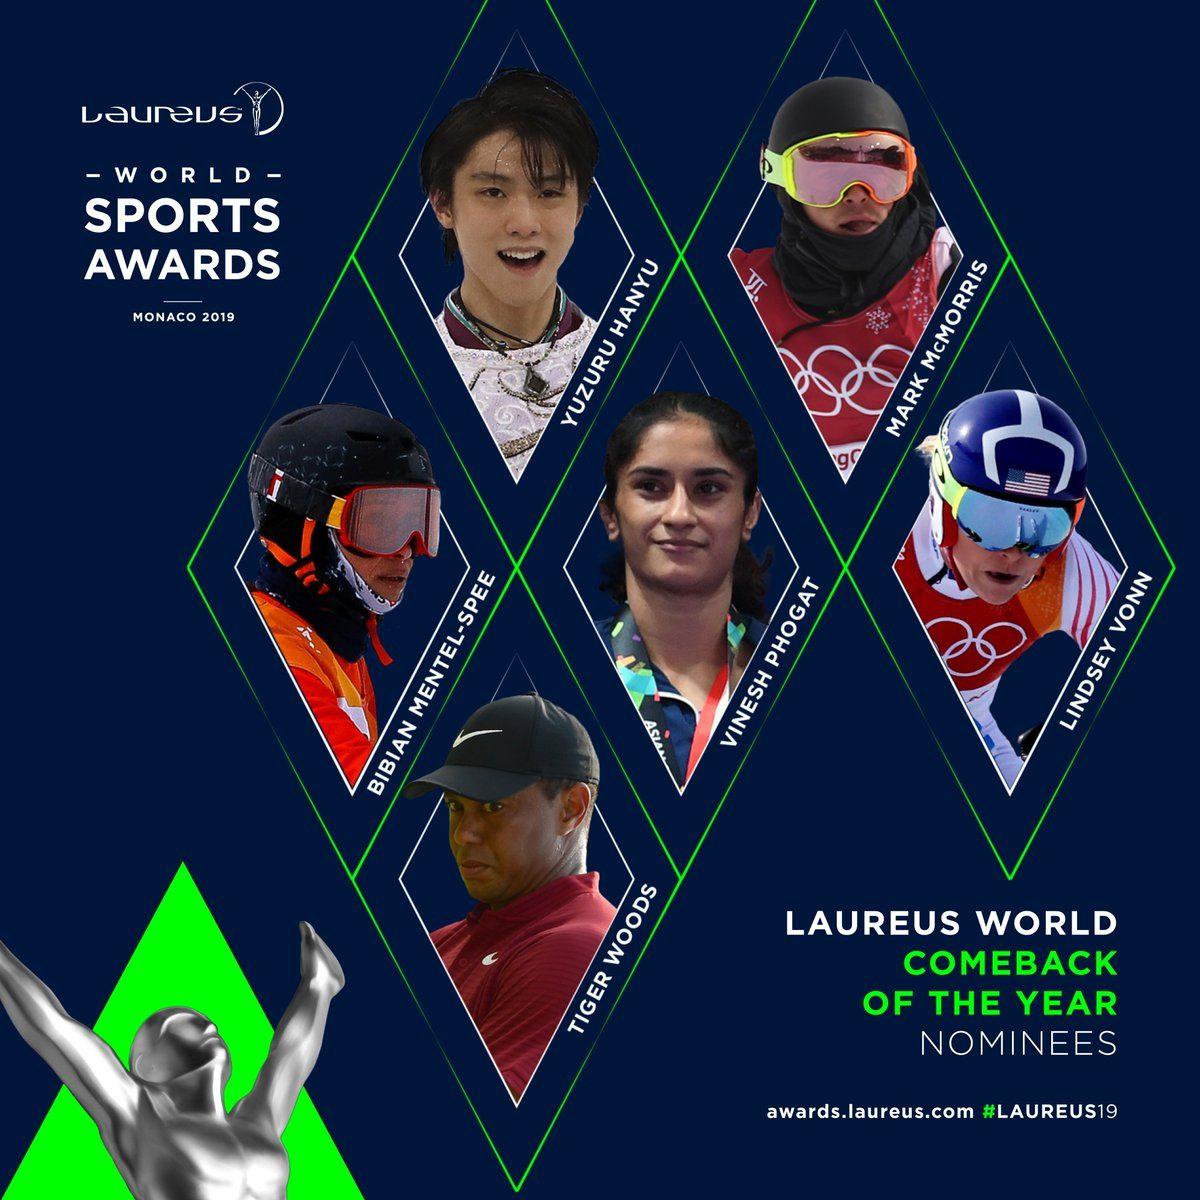 YuzuNews 18 febbraio 2019: Laureus World Sports Awards